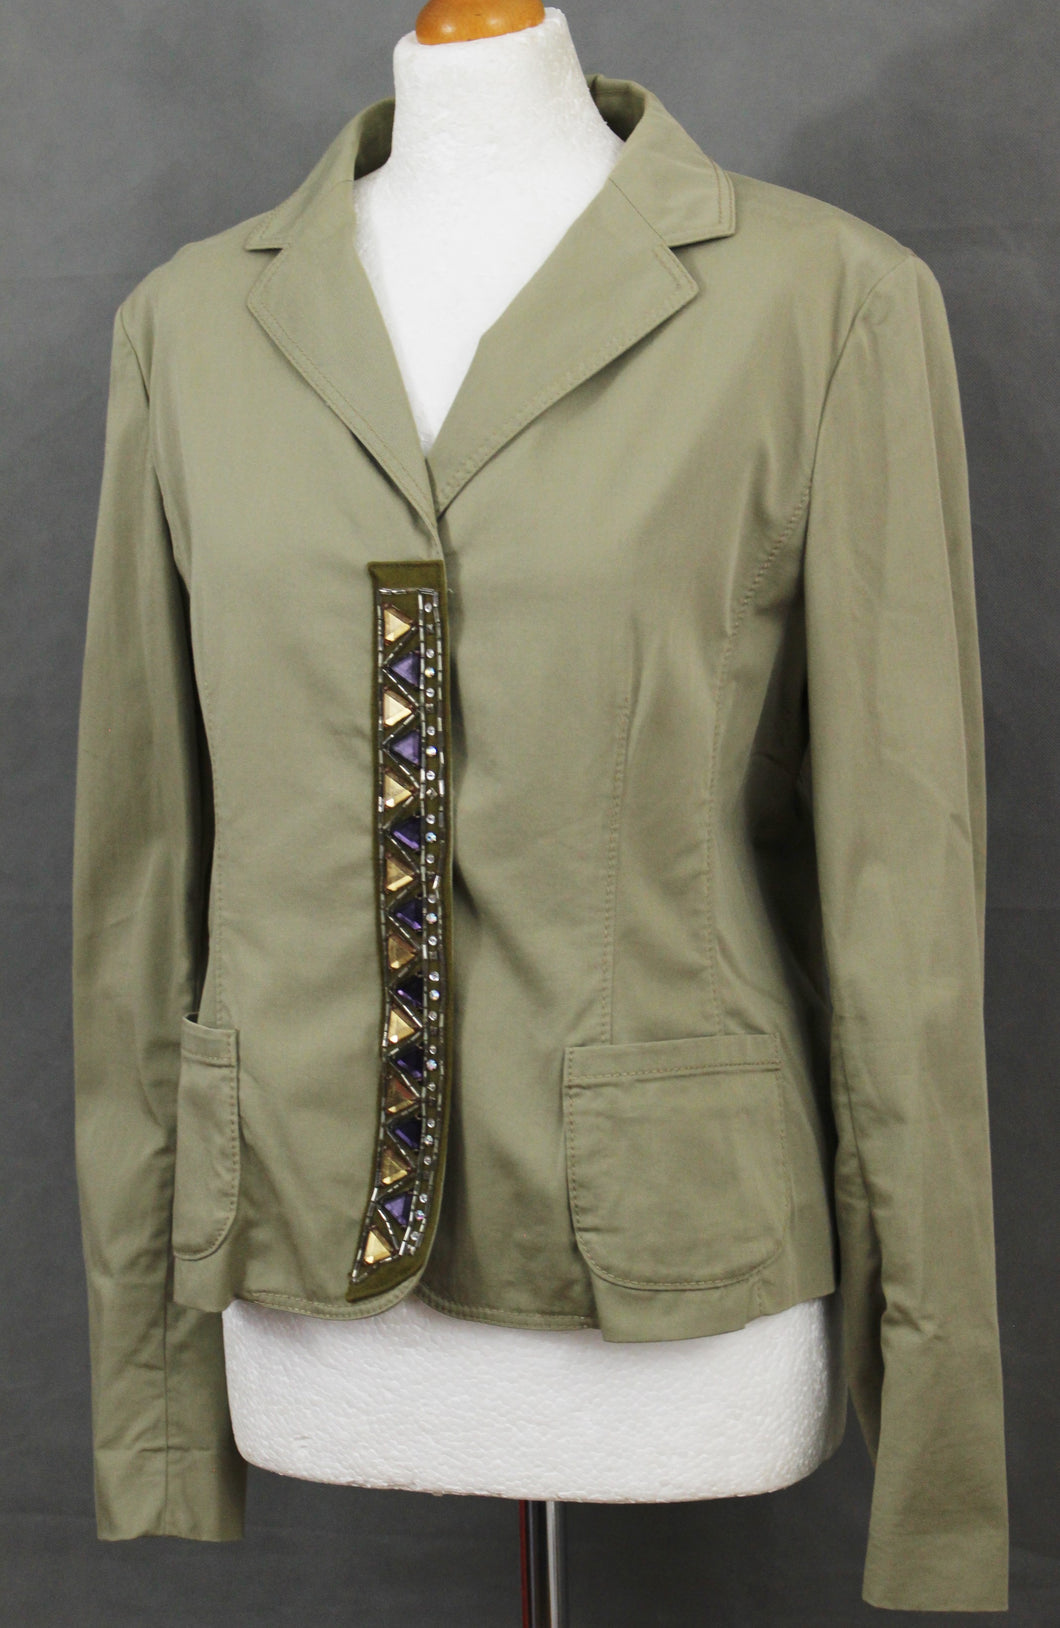 PHILOSOPHY DI ALBERTA FERRETTI Ladies Embellished JACKET - Size UK 14 - IT 46 - US 10